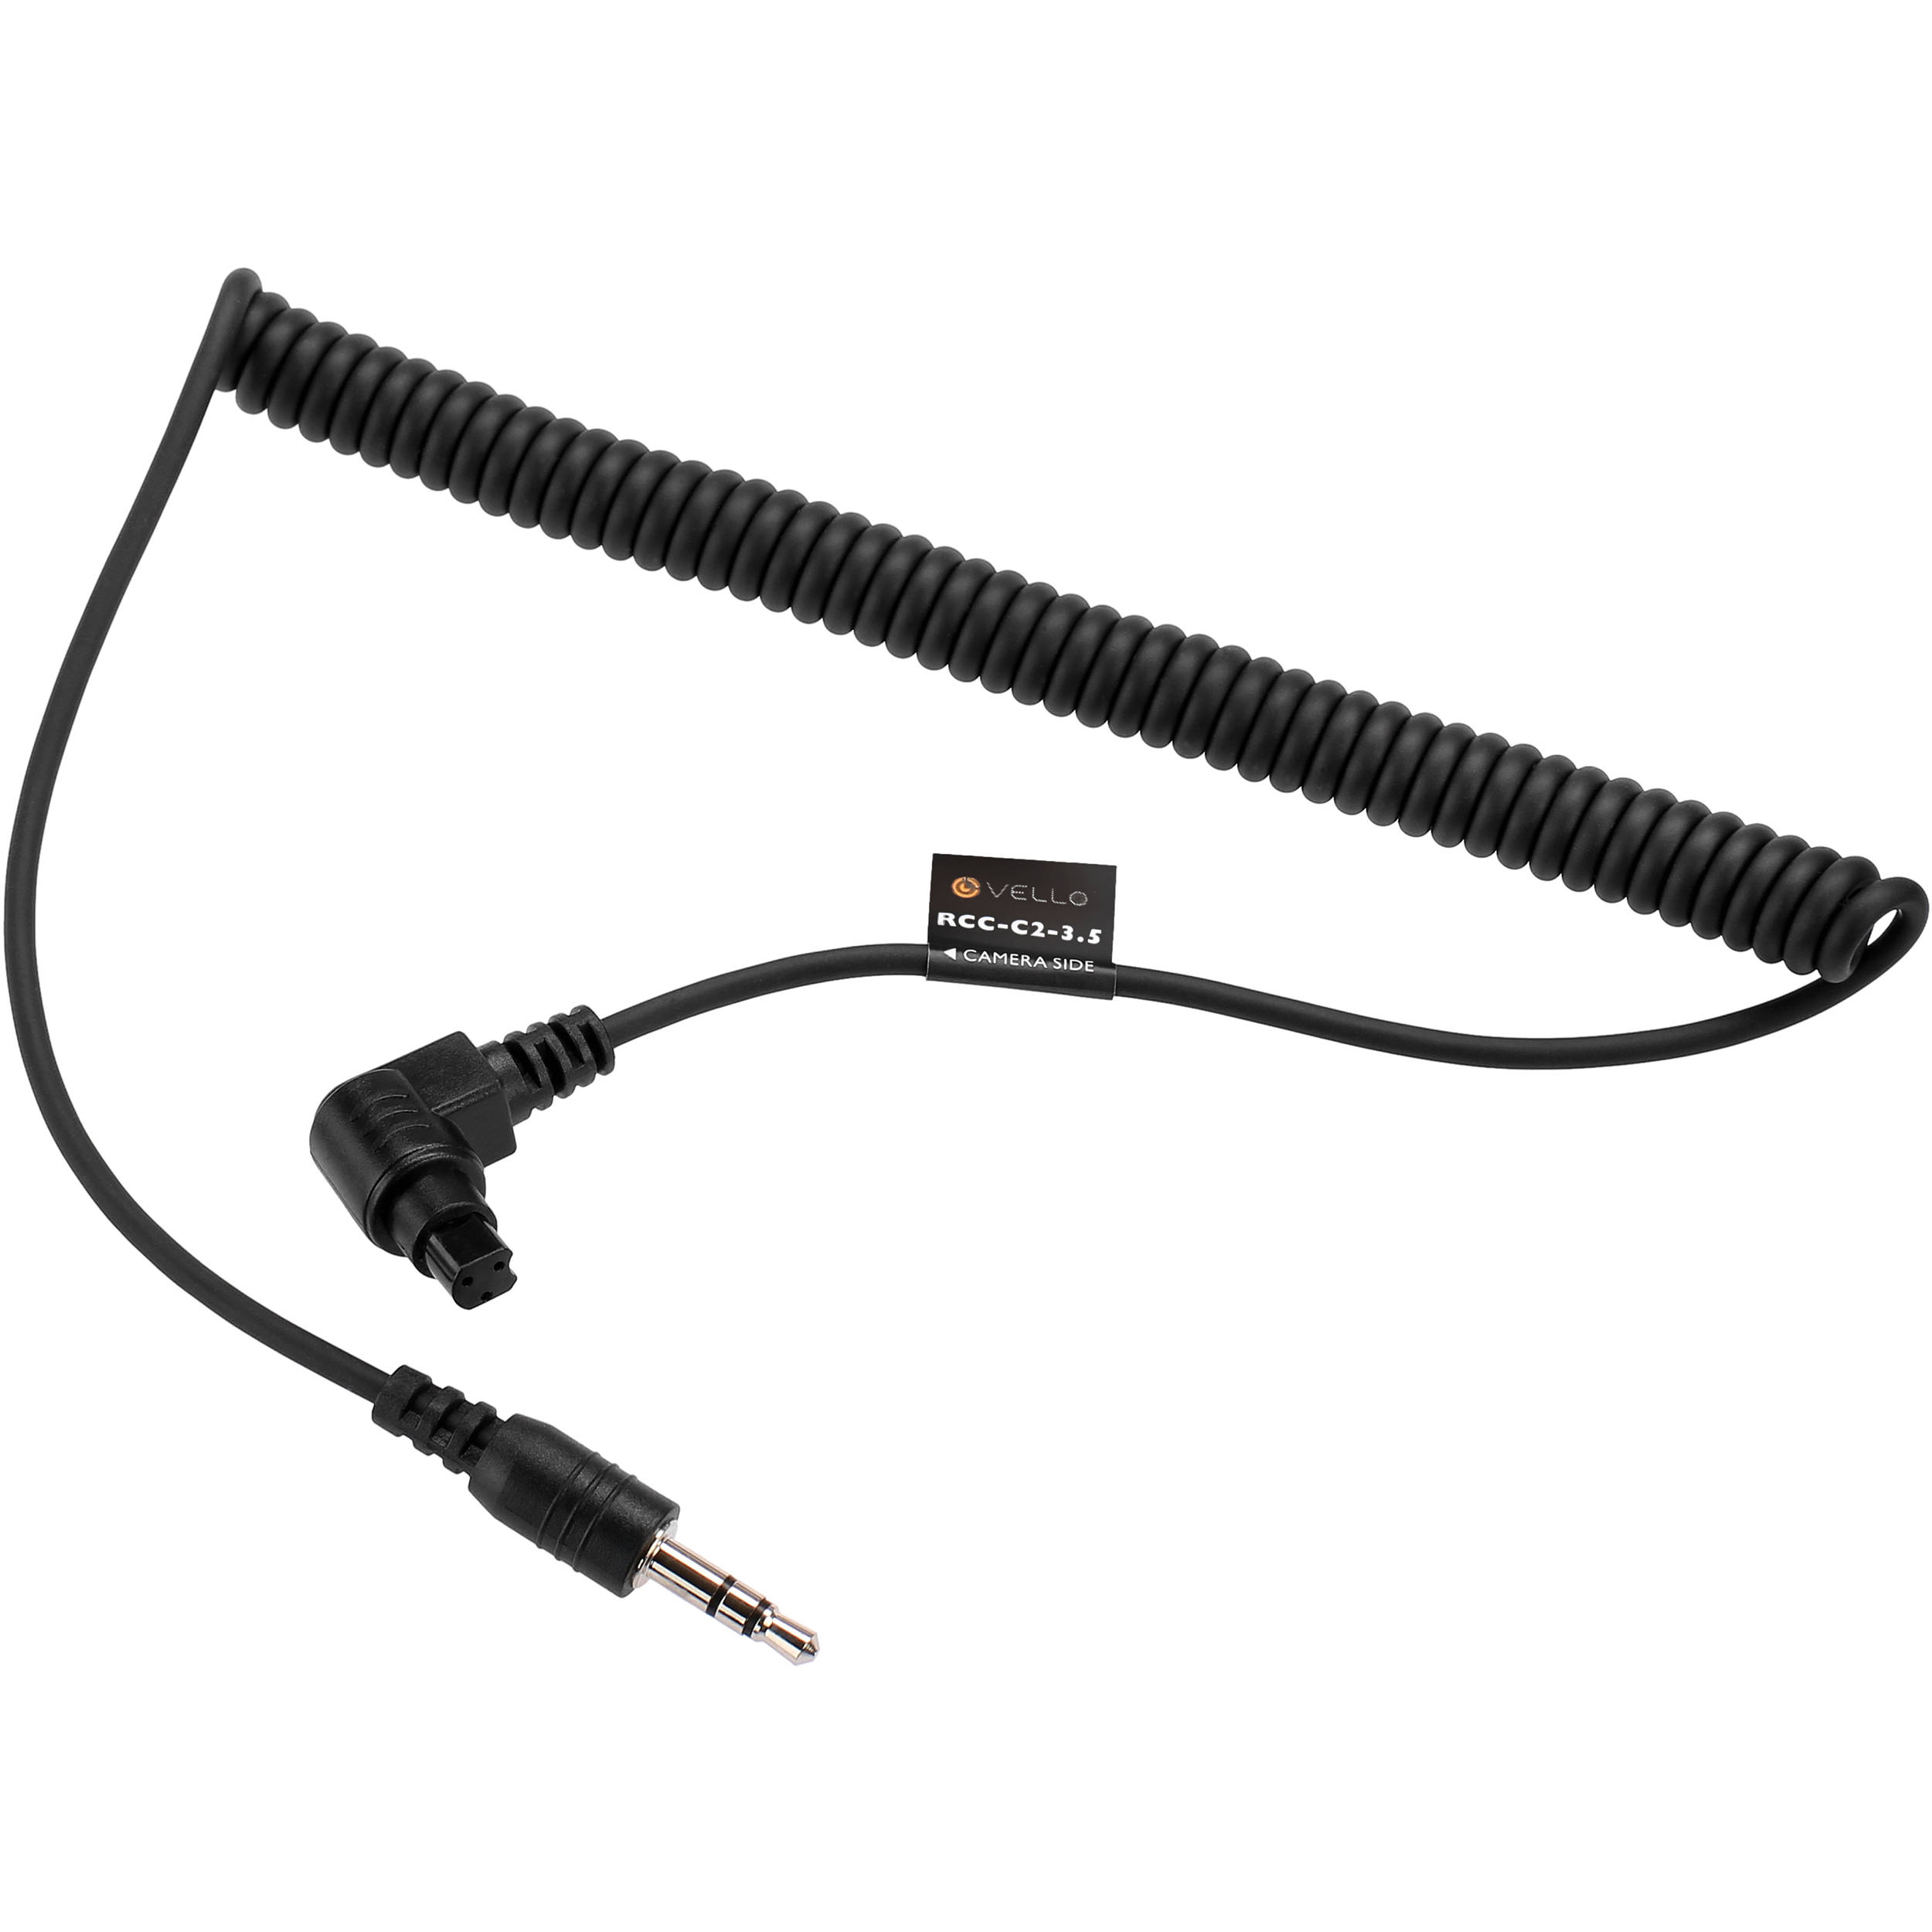 vello 3 5mm remote shutter release cable for canon rcc